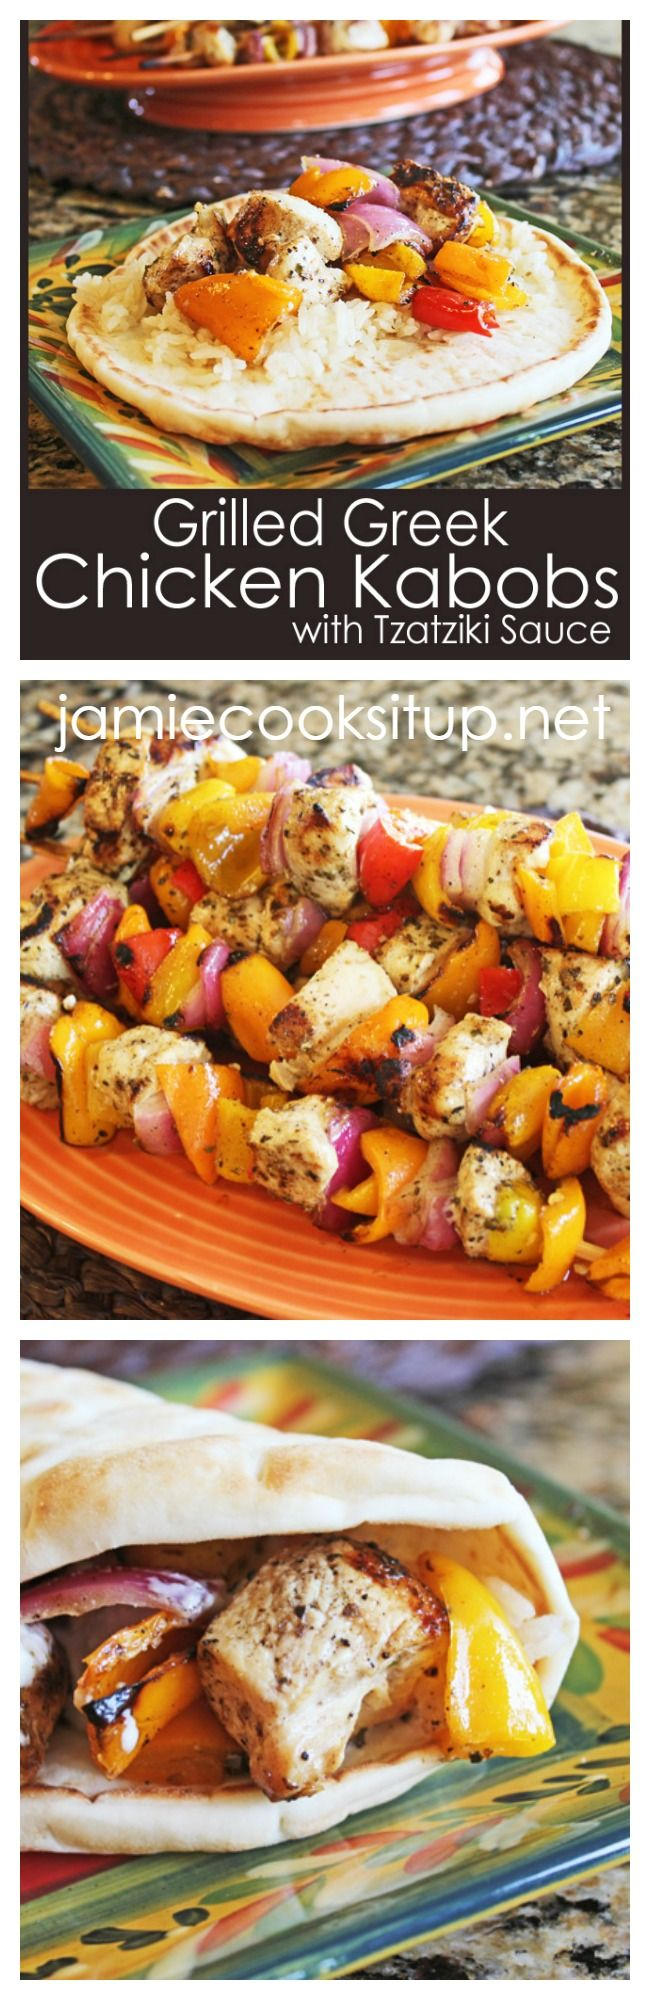 Grilled Greek Chicken Kabobs with Tzatziki Sauce from Jamie Cooks It Up!